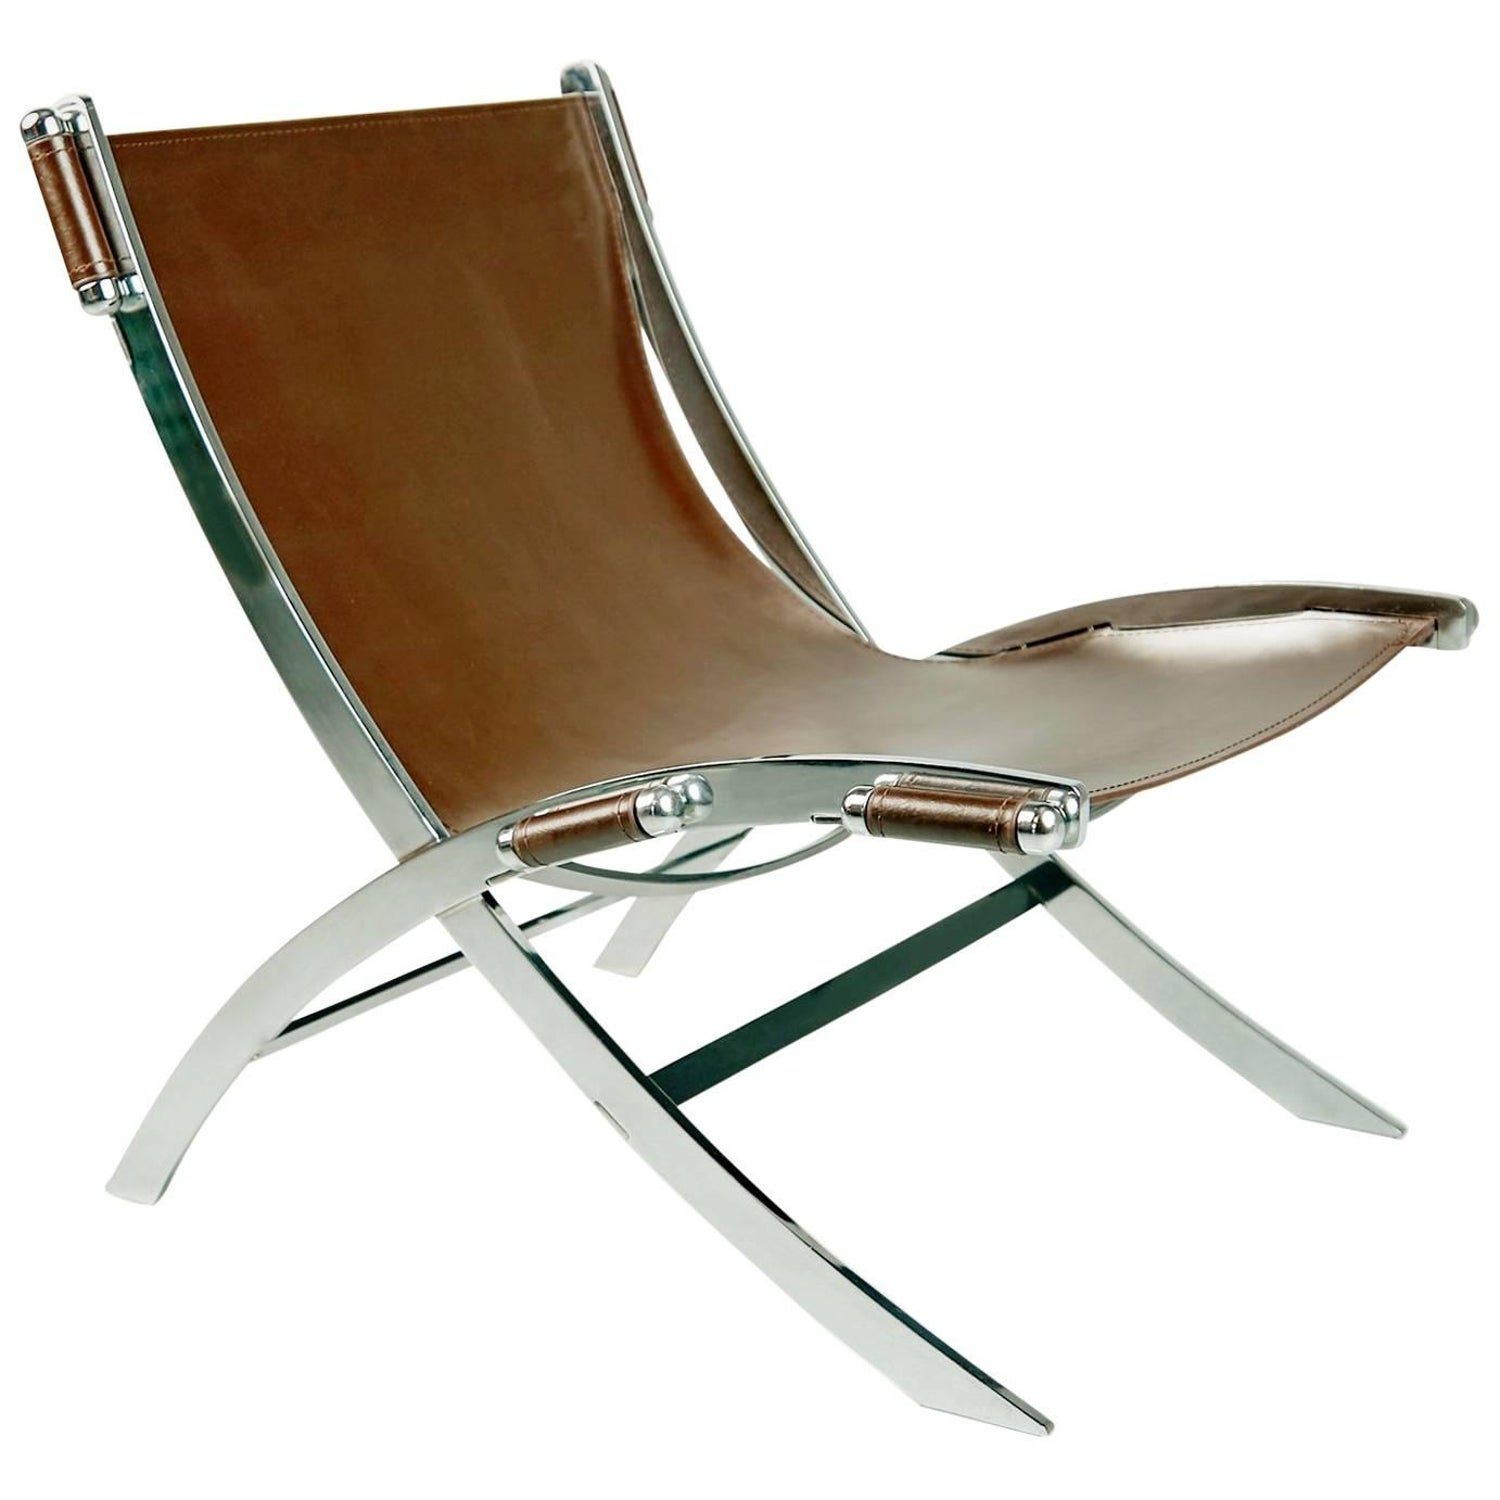 Sling Lounge Chairs 180 For Sale on 1stdibs